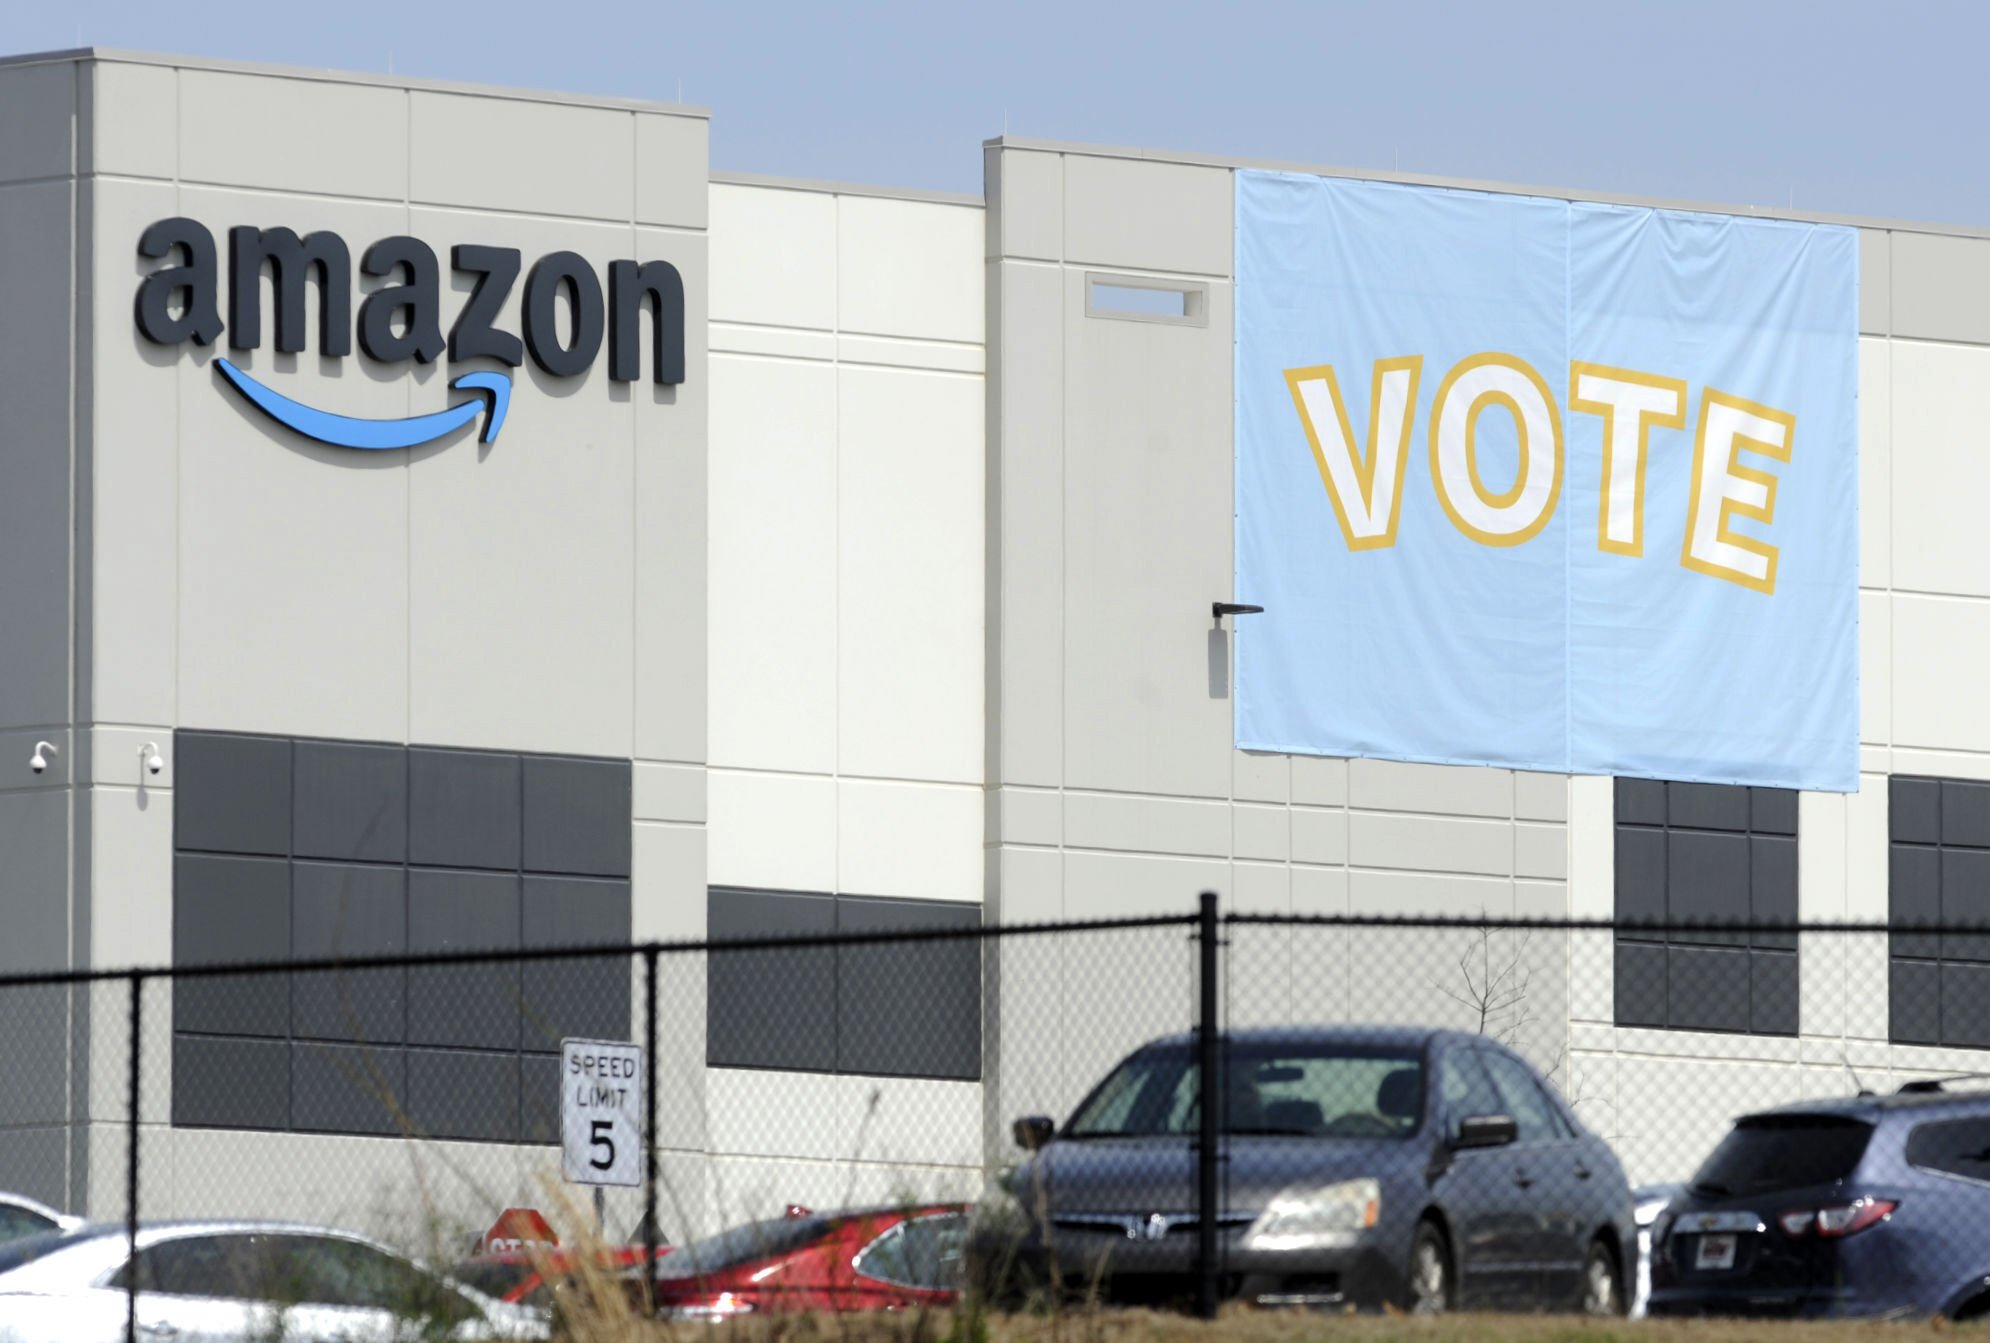 'Lighting a fuse': Amazon vote may spark more union pushes